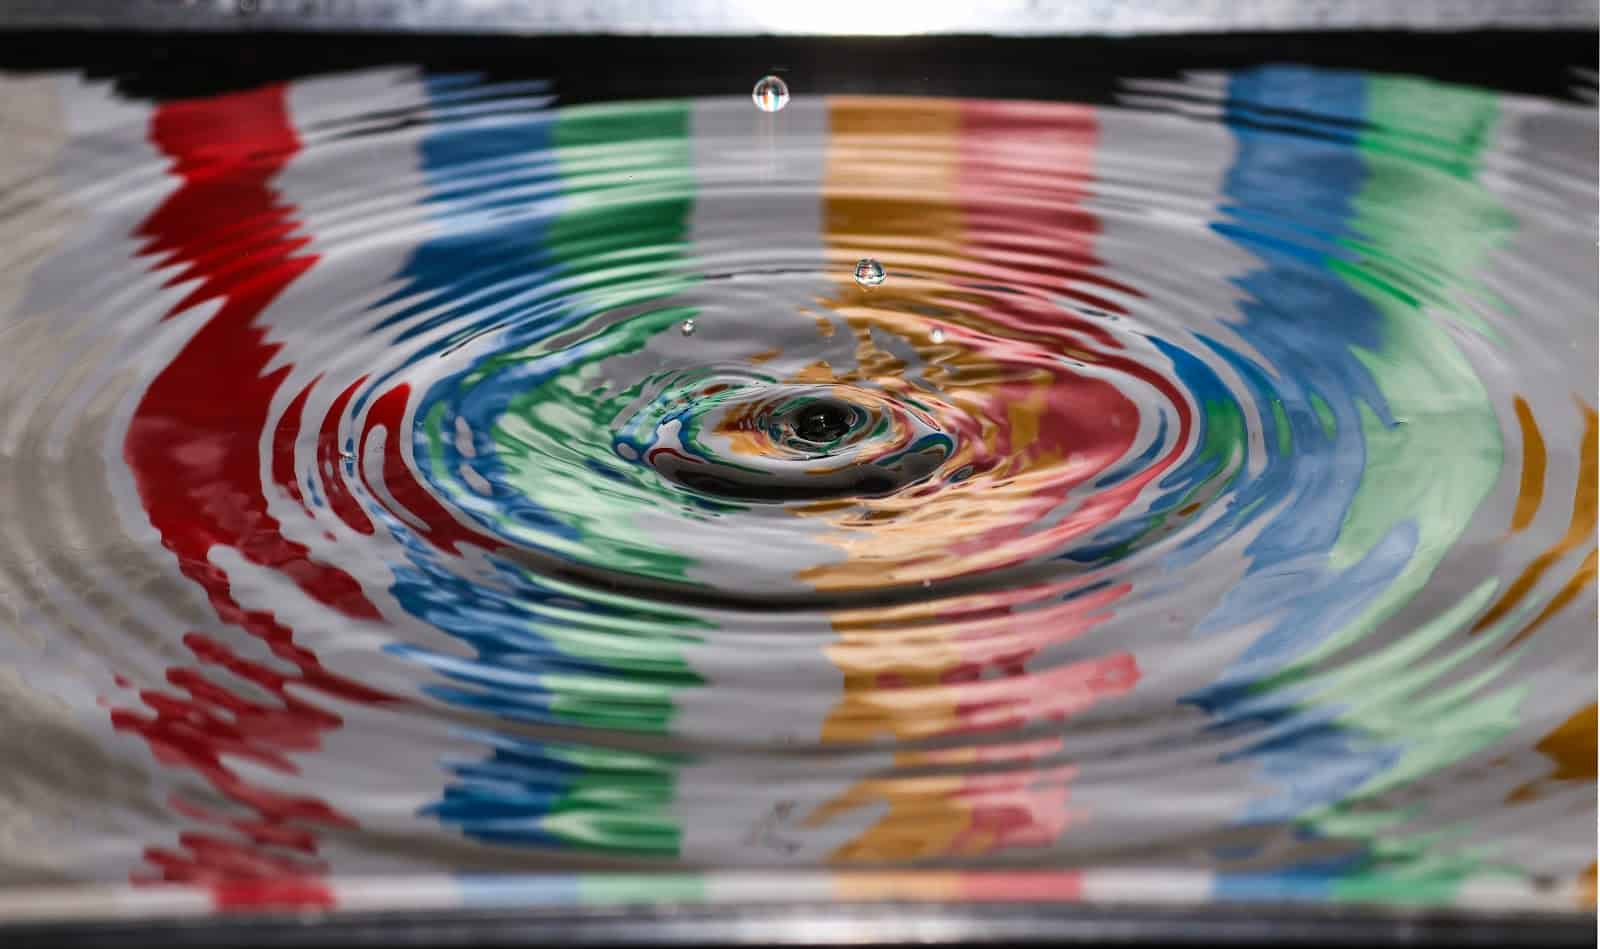 painting in water with a drop in the middle